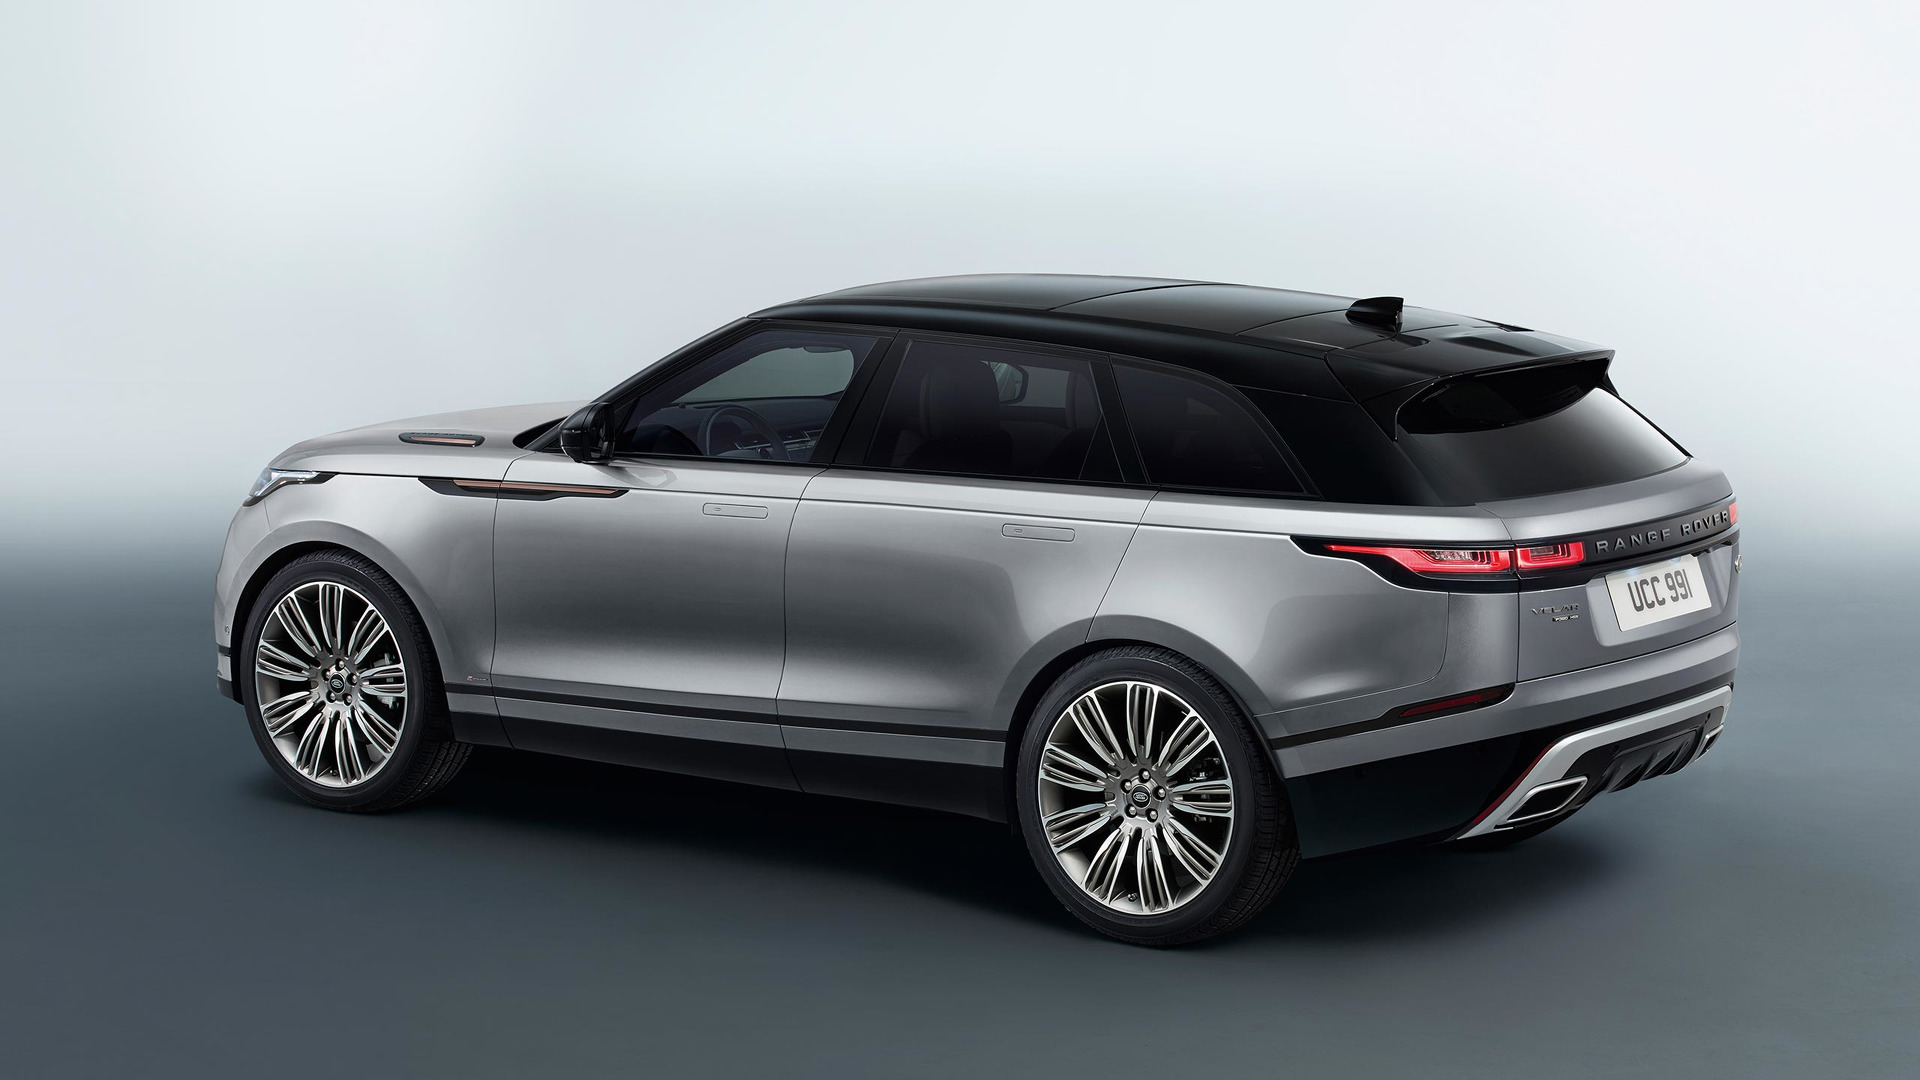 You Model And Act Reviews >> The most expensive Land Rover Range Rover Velar costs $103,265